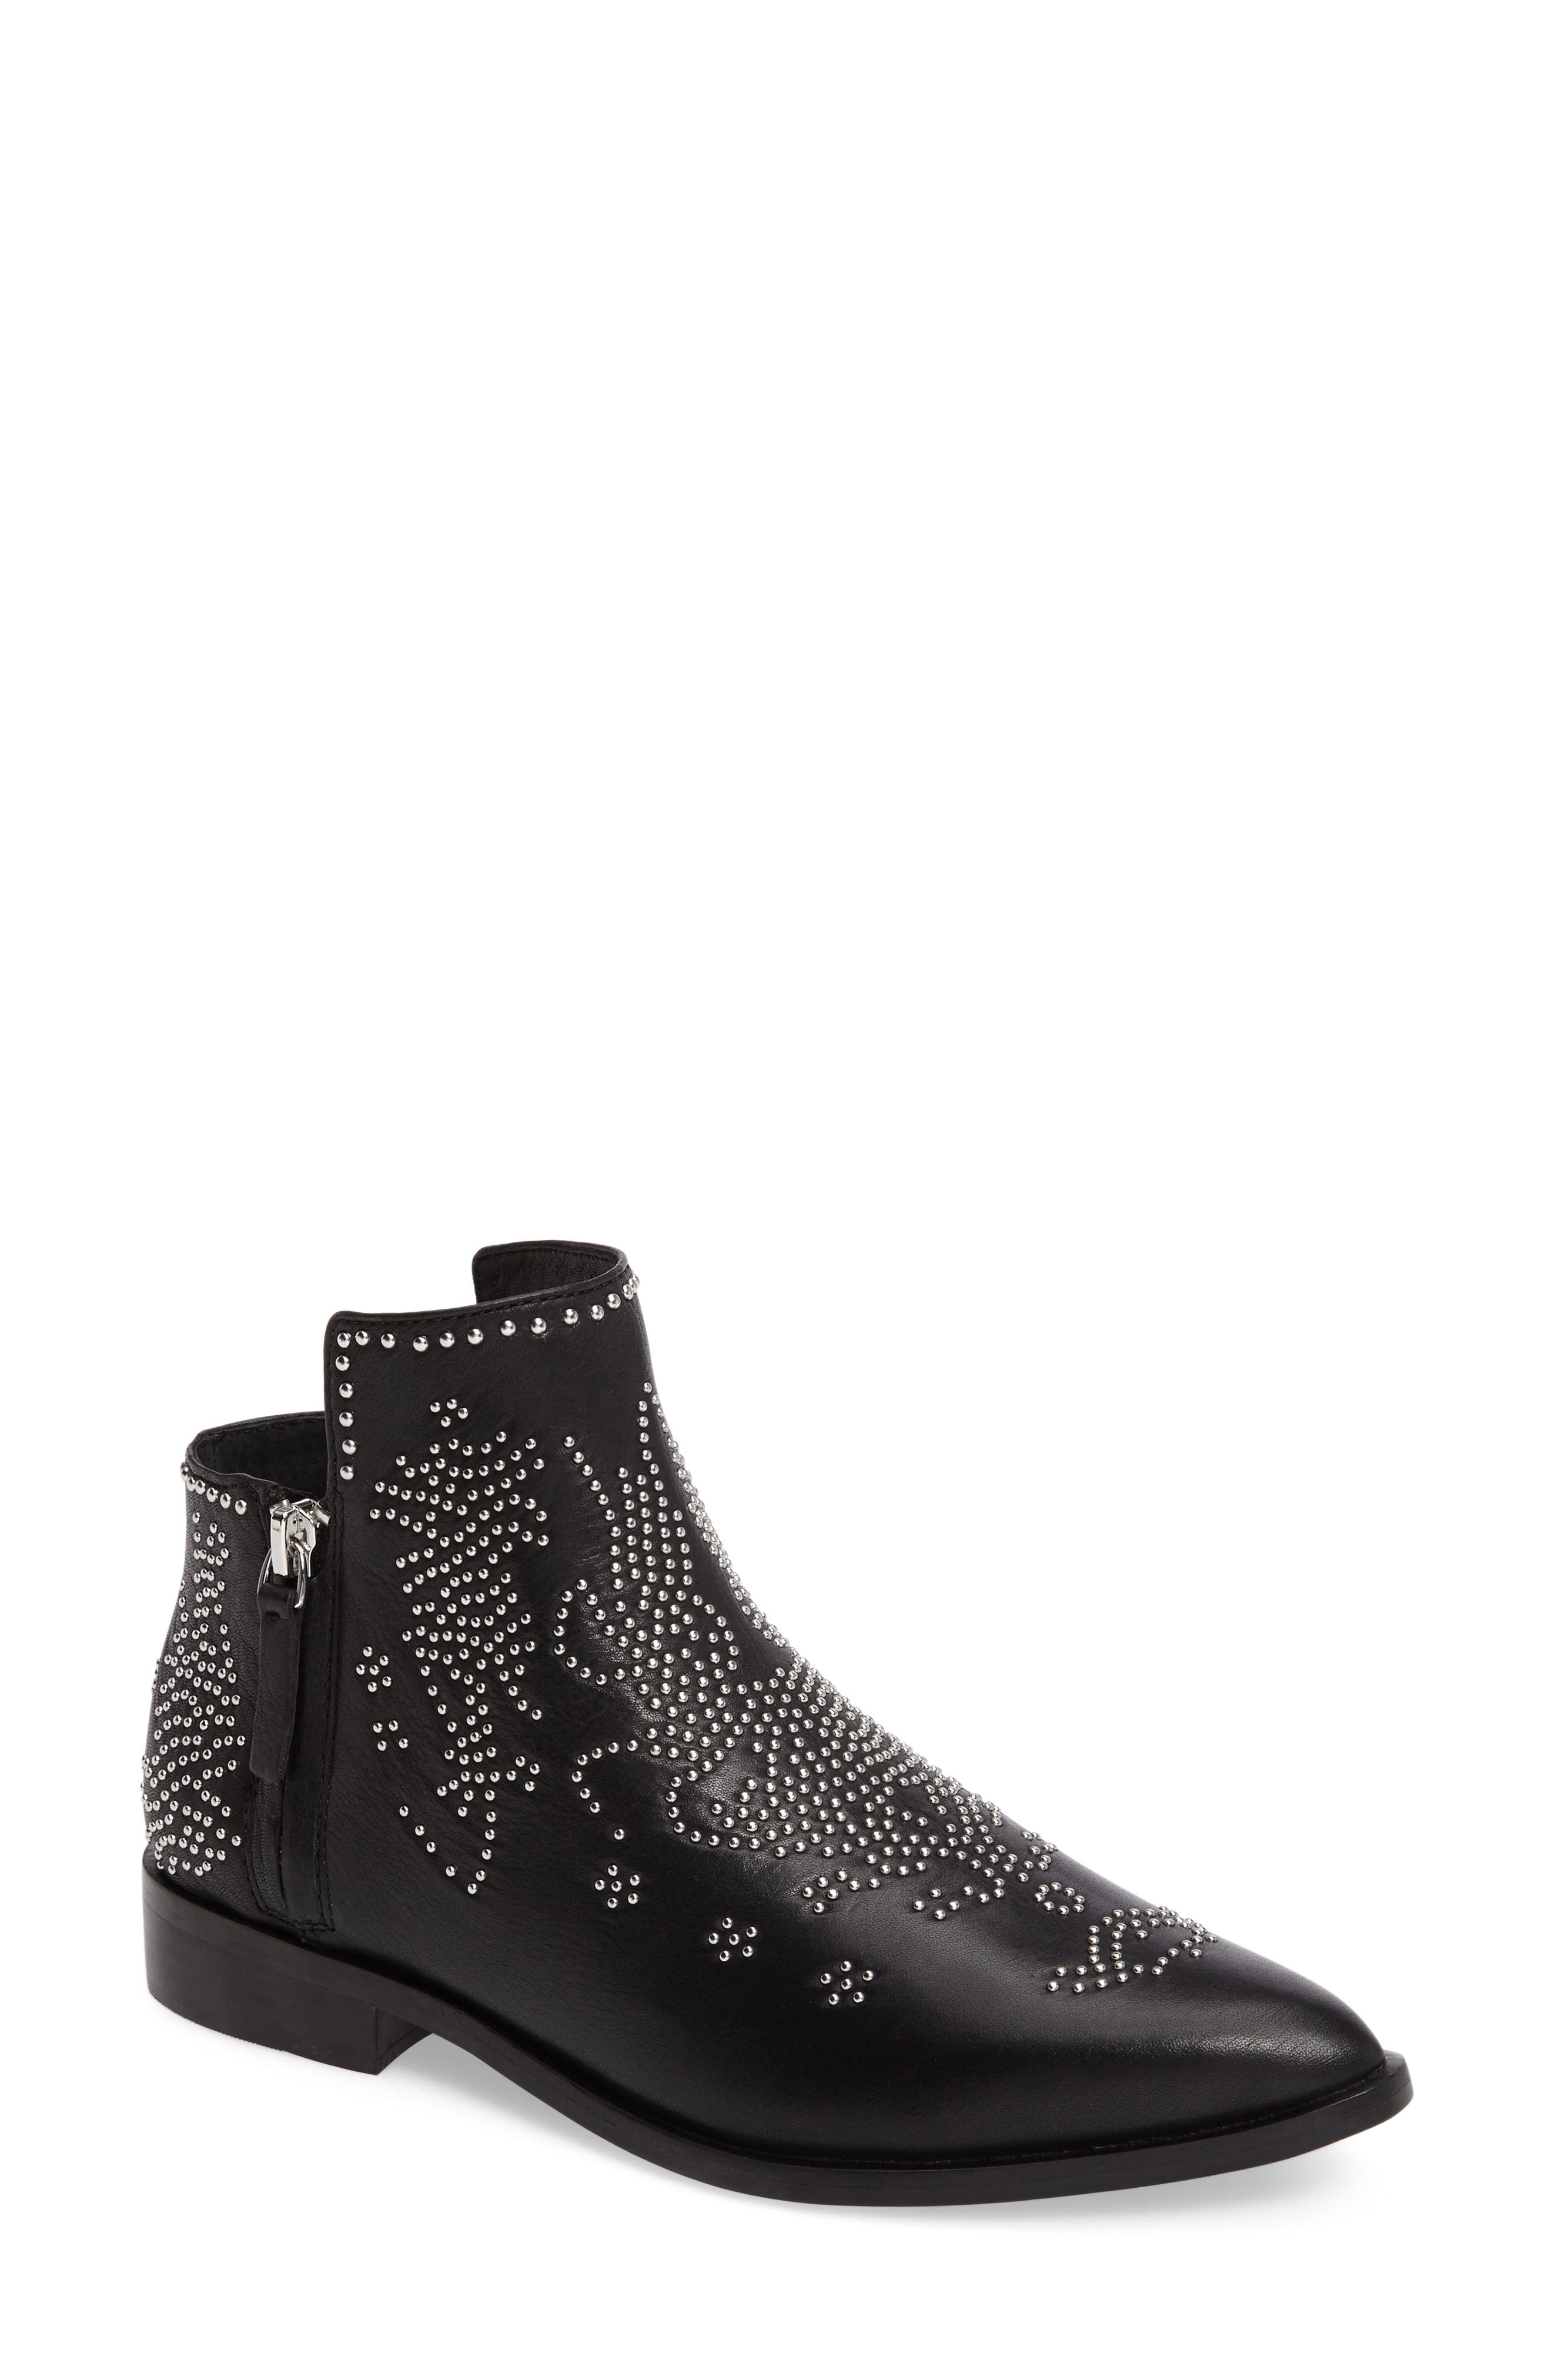 Callback2 Studded Bootie,                             Main thumbnail 1, color,                             001